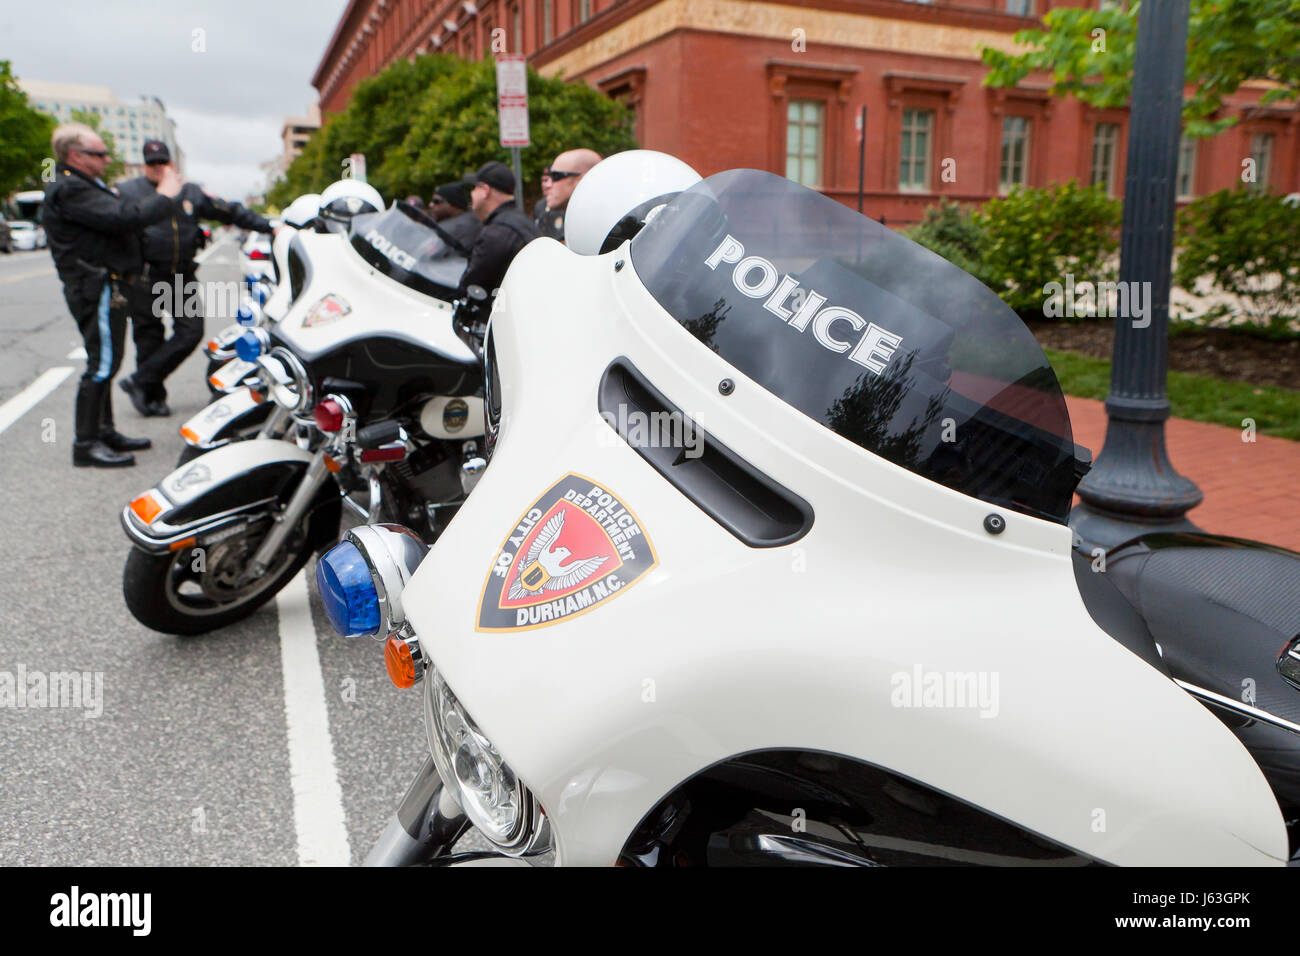 Durham, North Carolina Police Department motorcycle unit - USA - Stock Image